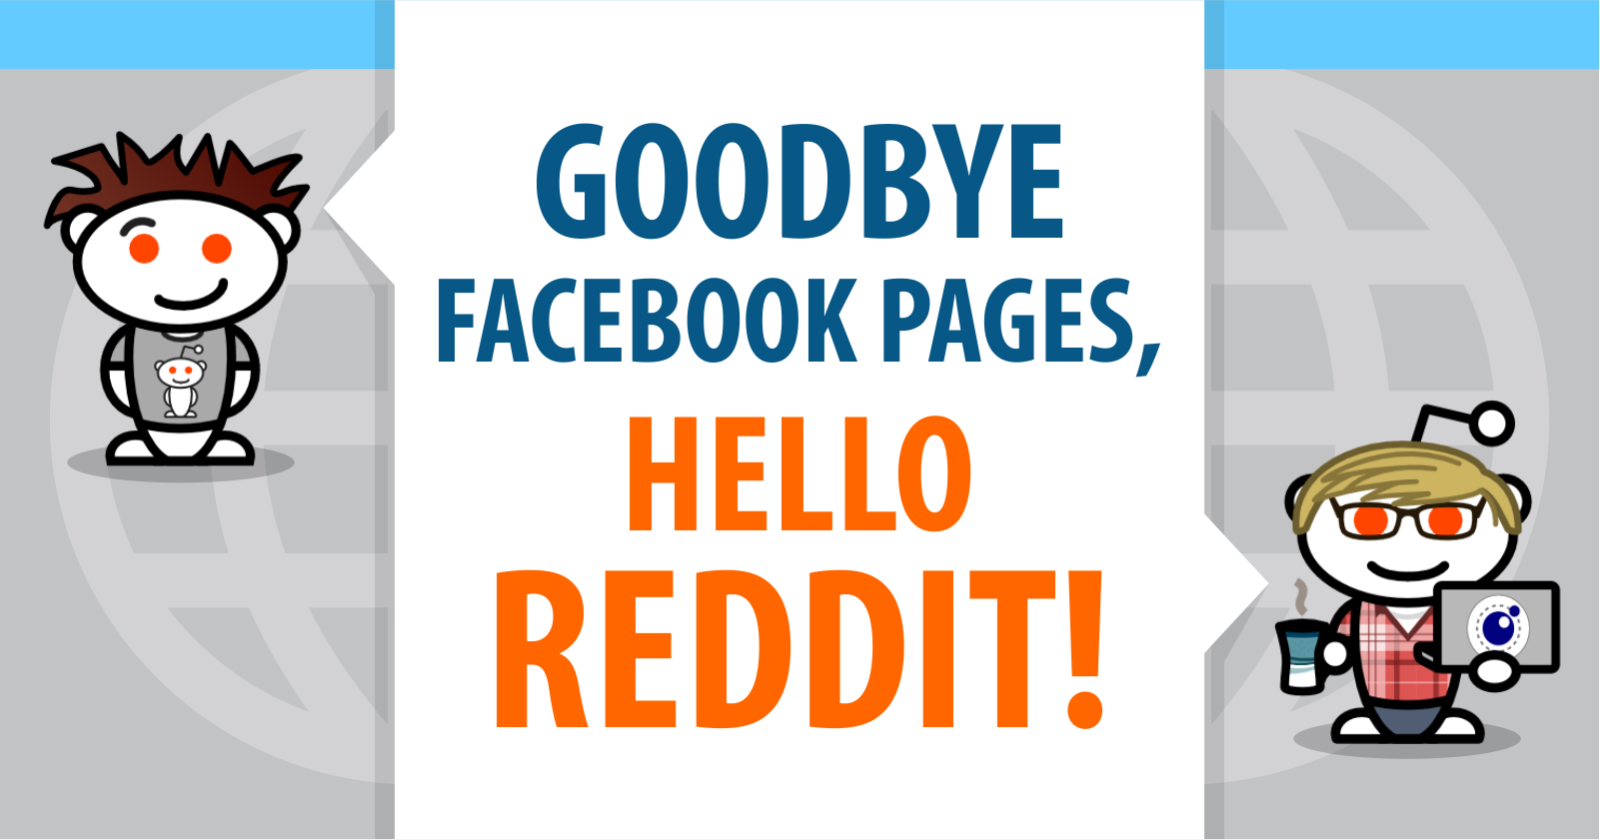 Goodbye Facebook Pages, Hello Reddit! by @brentcsutoras